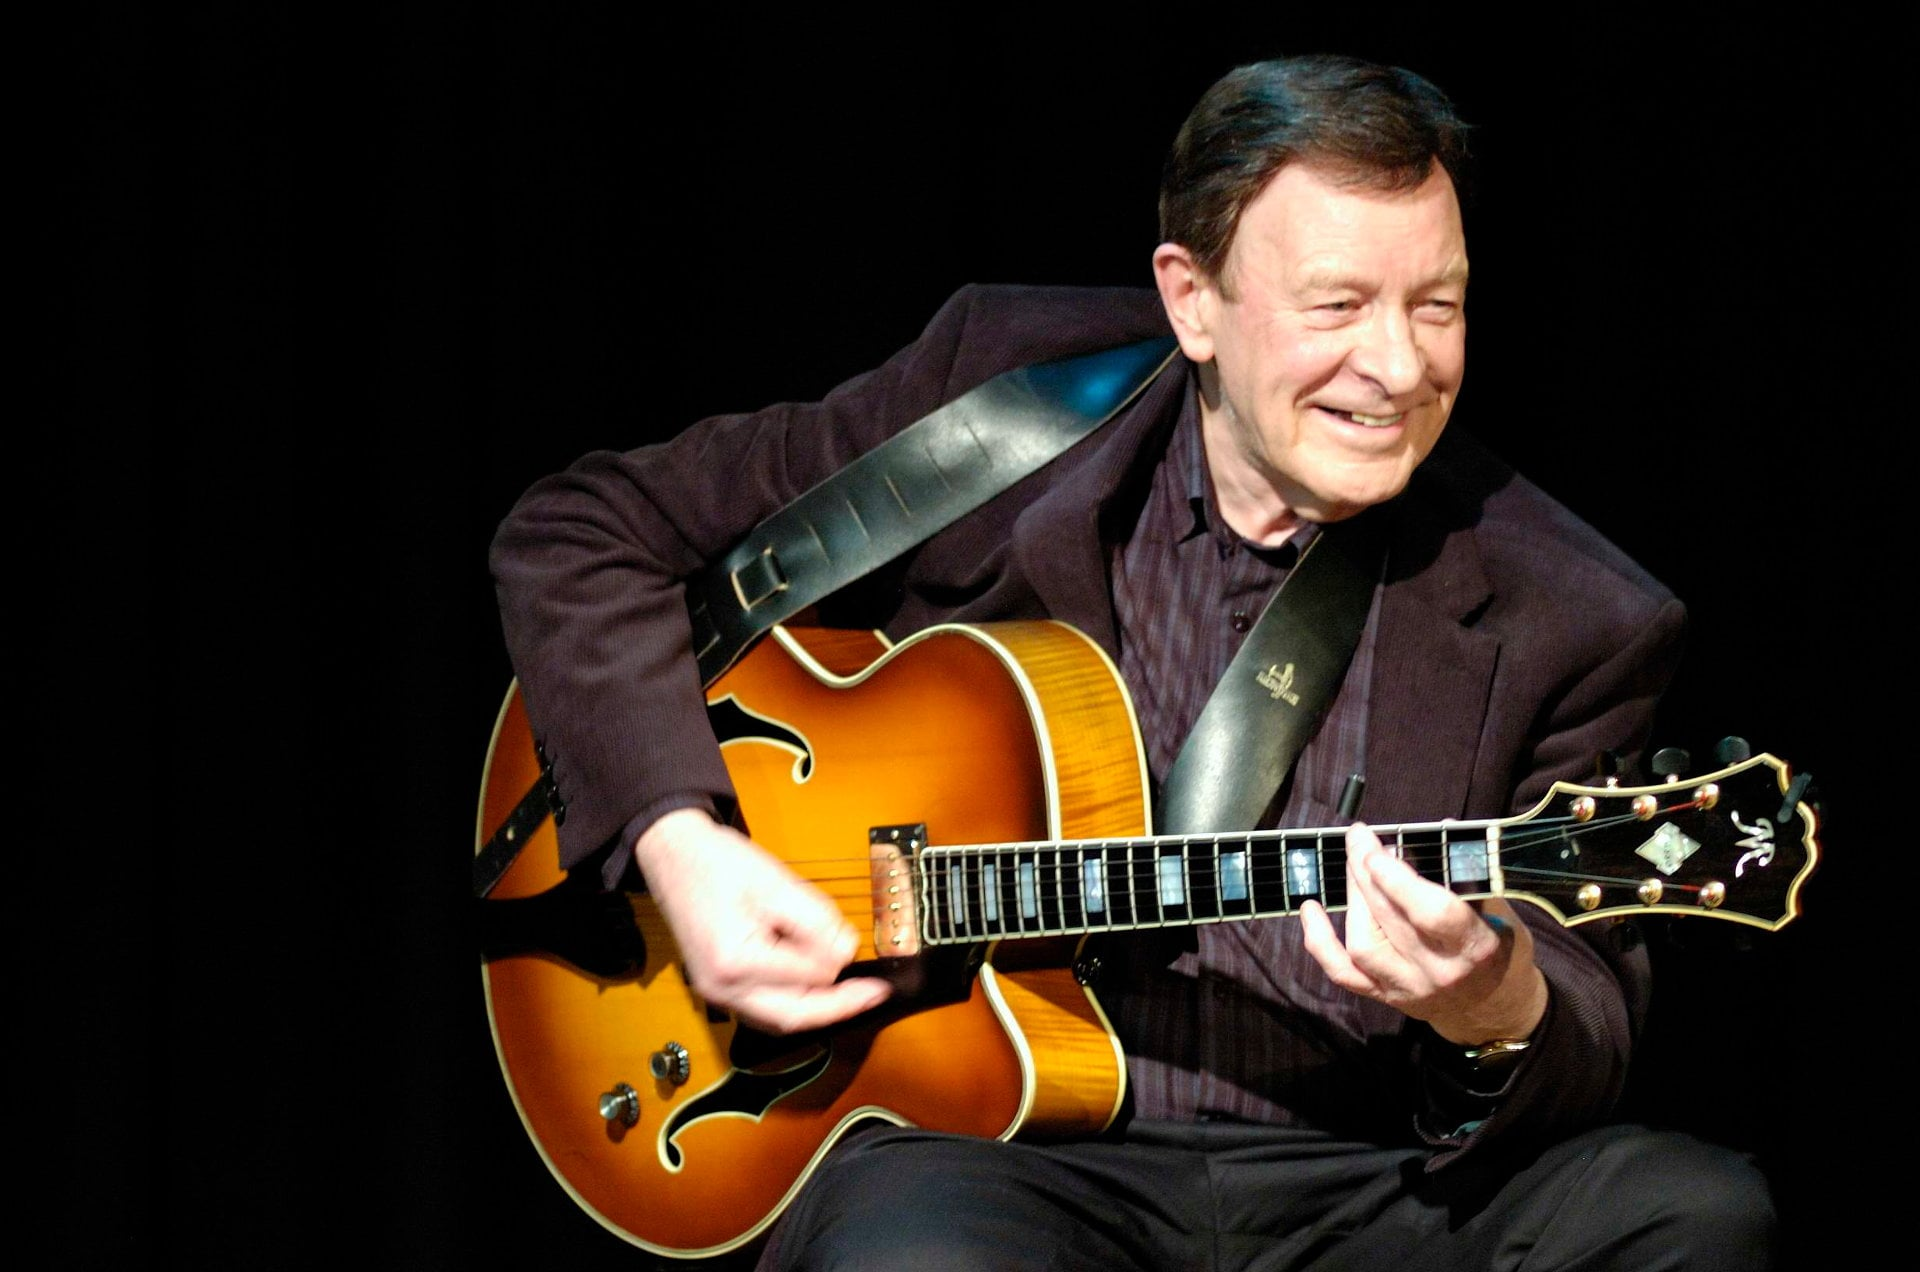 Trefor Owen —Internationally Acclaimed Jazz Guitarist, Educator and Author